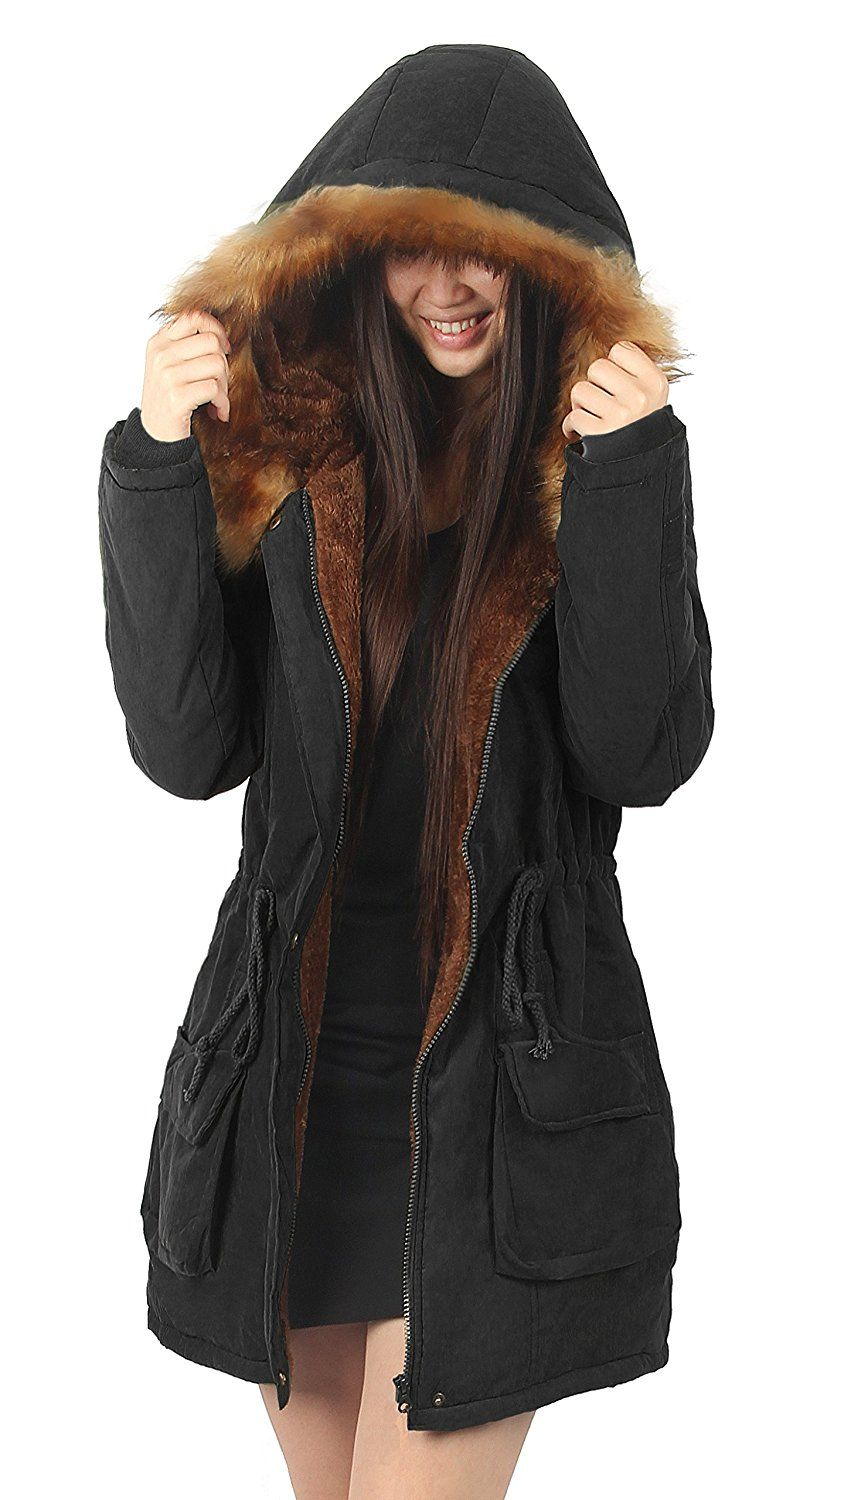 35f2ae96b03 Amazon.com  iLoveSIA Womens Hooded Warm Coats Parkas with Faux Fur Jackets   Clothing